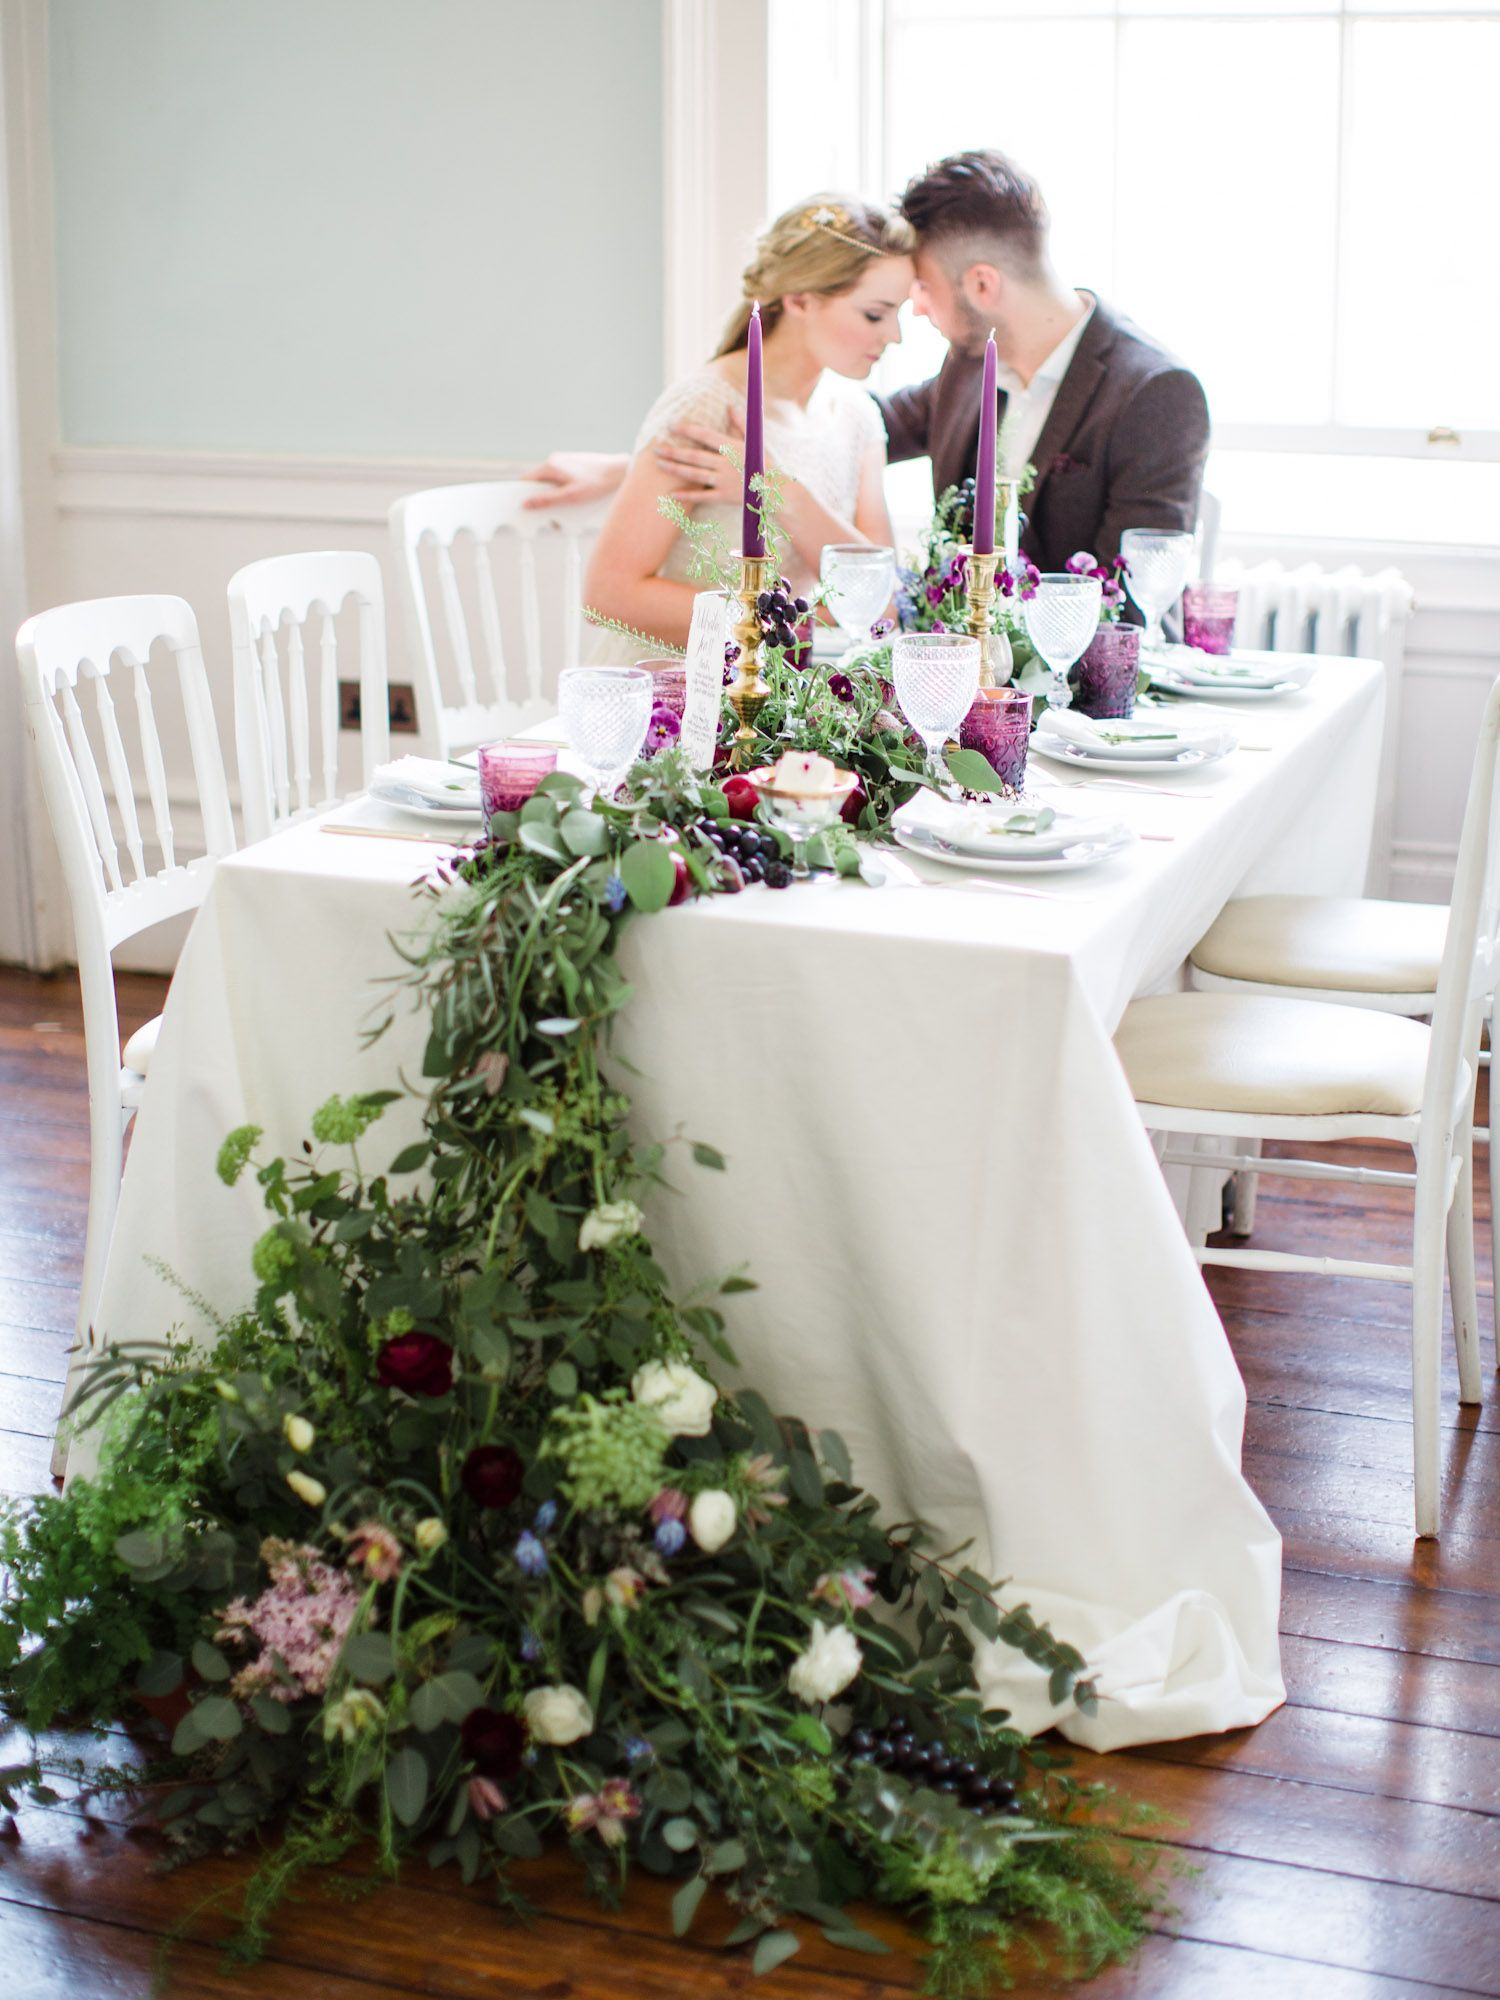 Wedding Table Floral Foliage Runner Photography: Wookie Photography ...